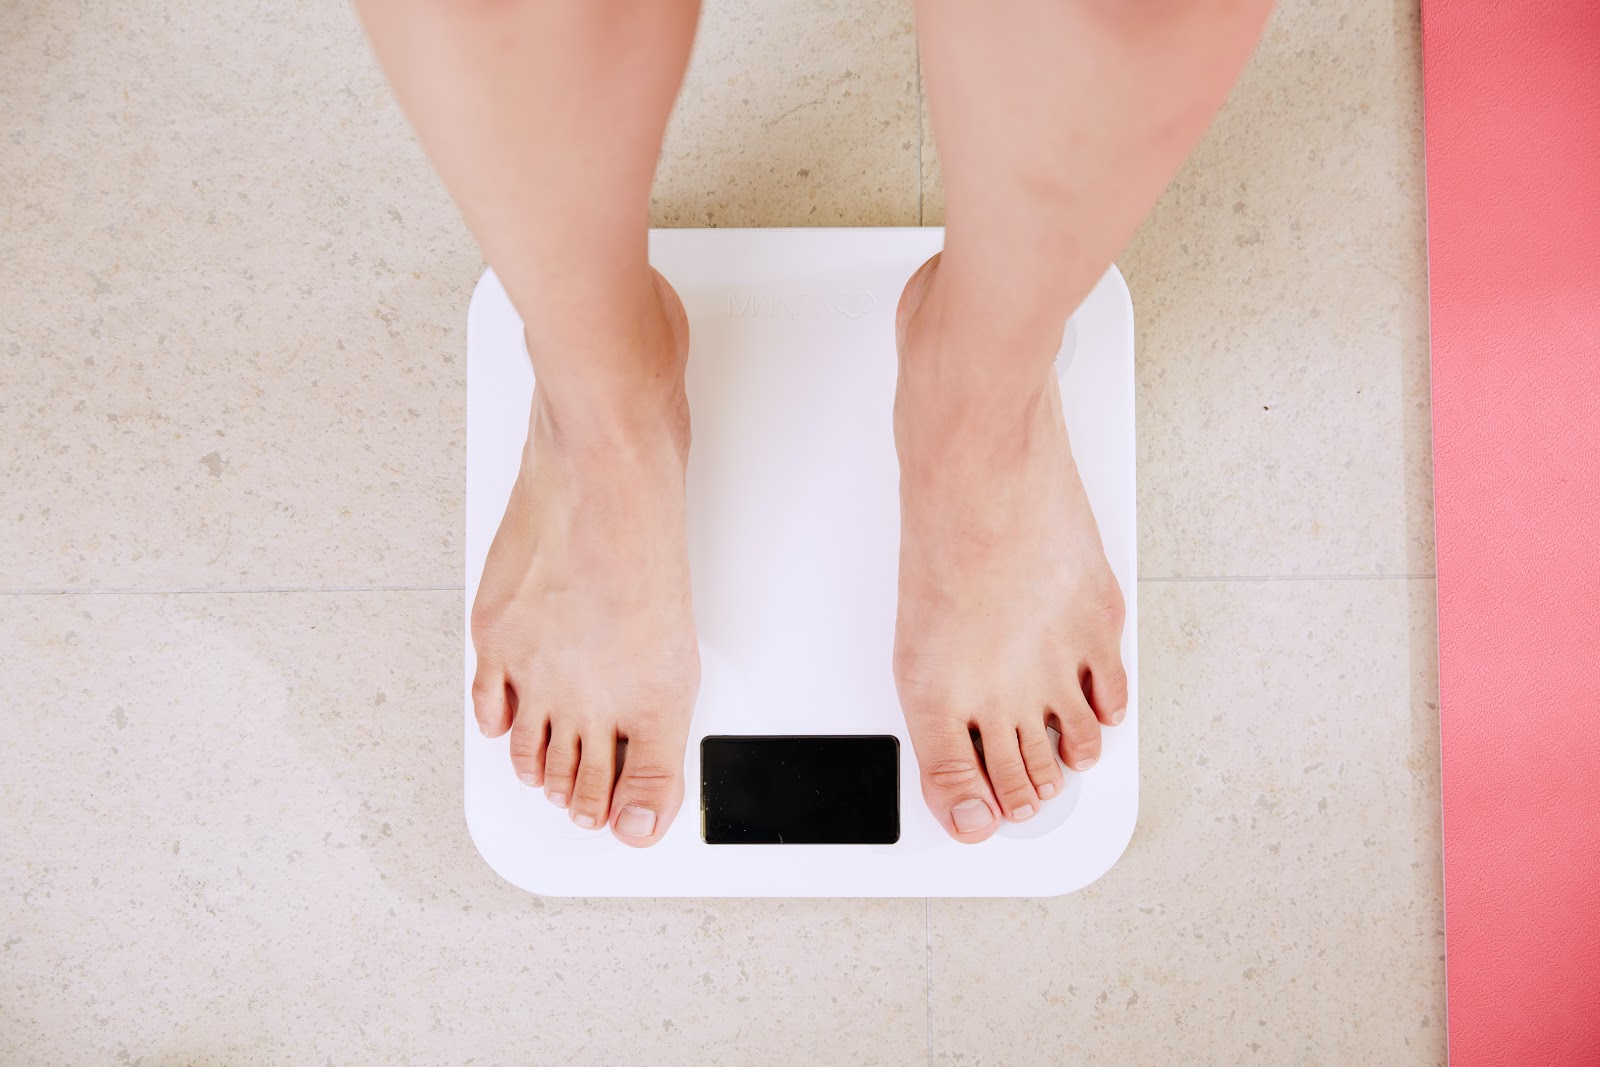 A person standing on a scale. How to lost weight.